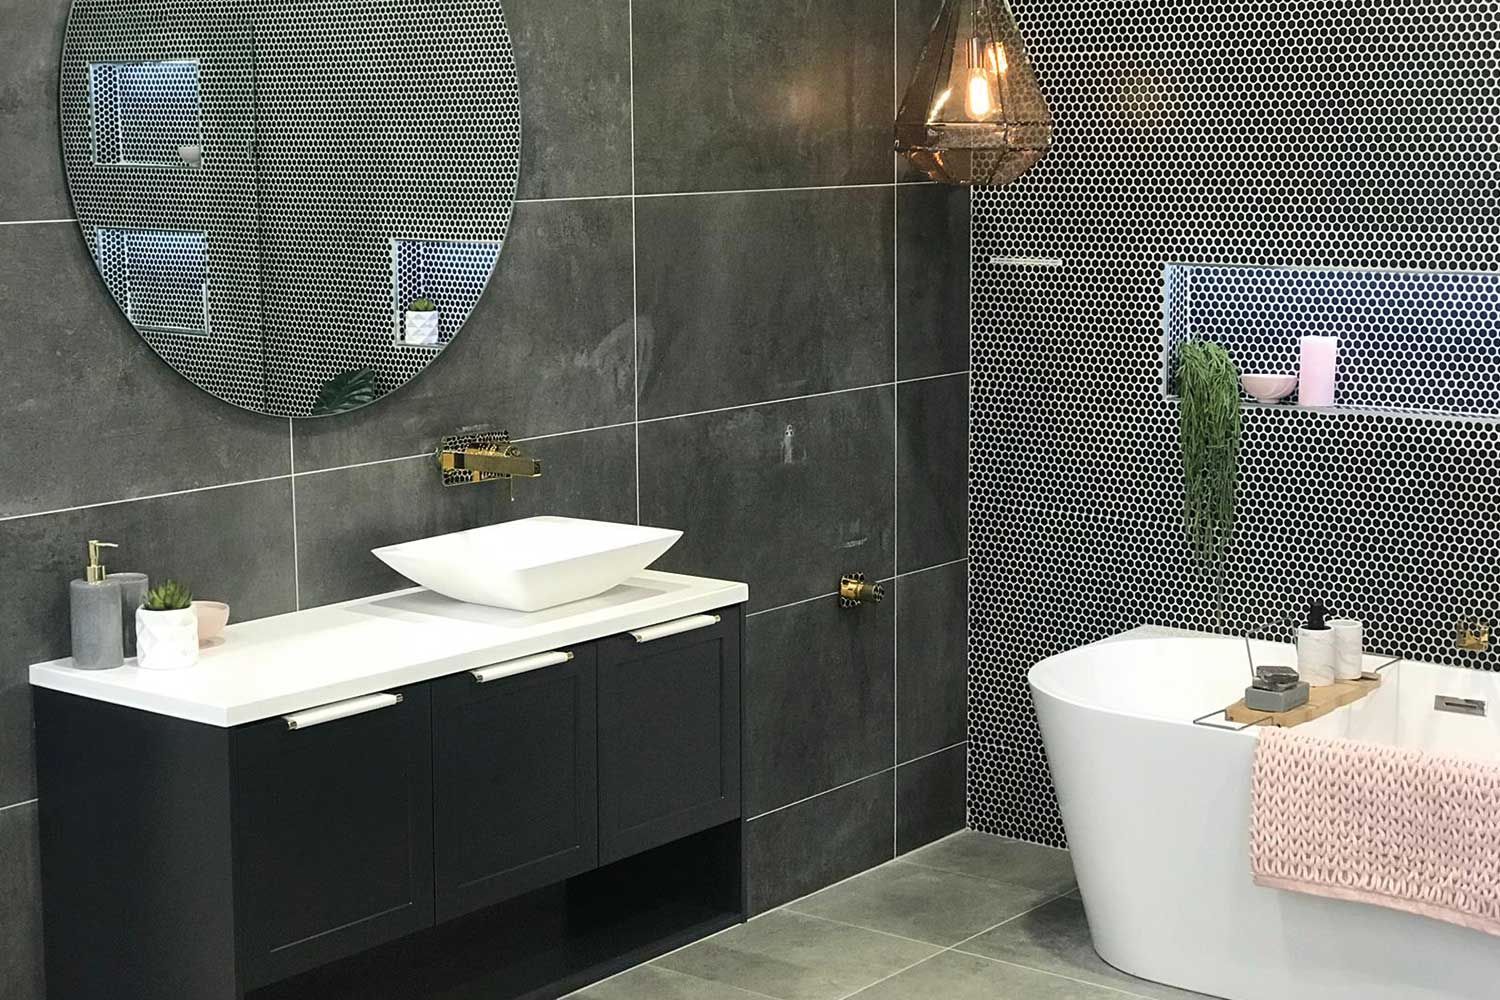 Latest Bathroom Design The latest in modern bathroom designs to add luxe on a budget